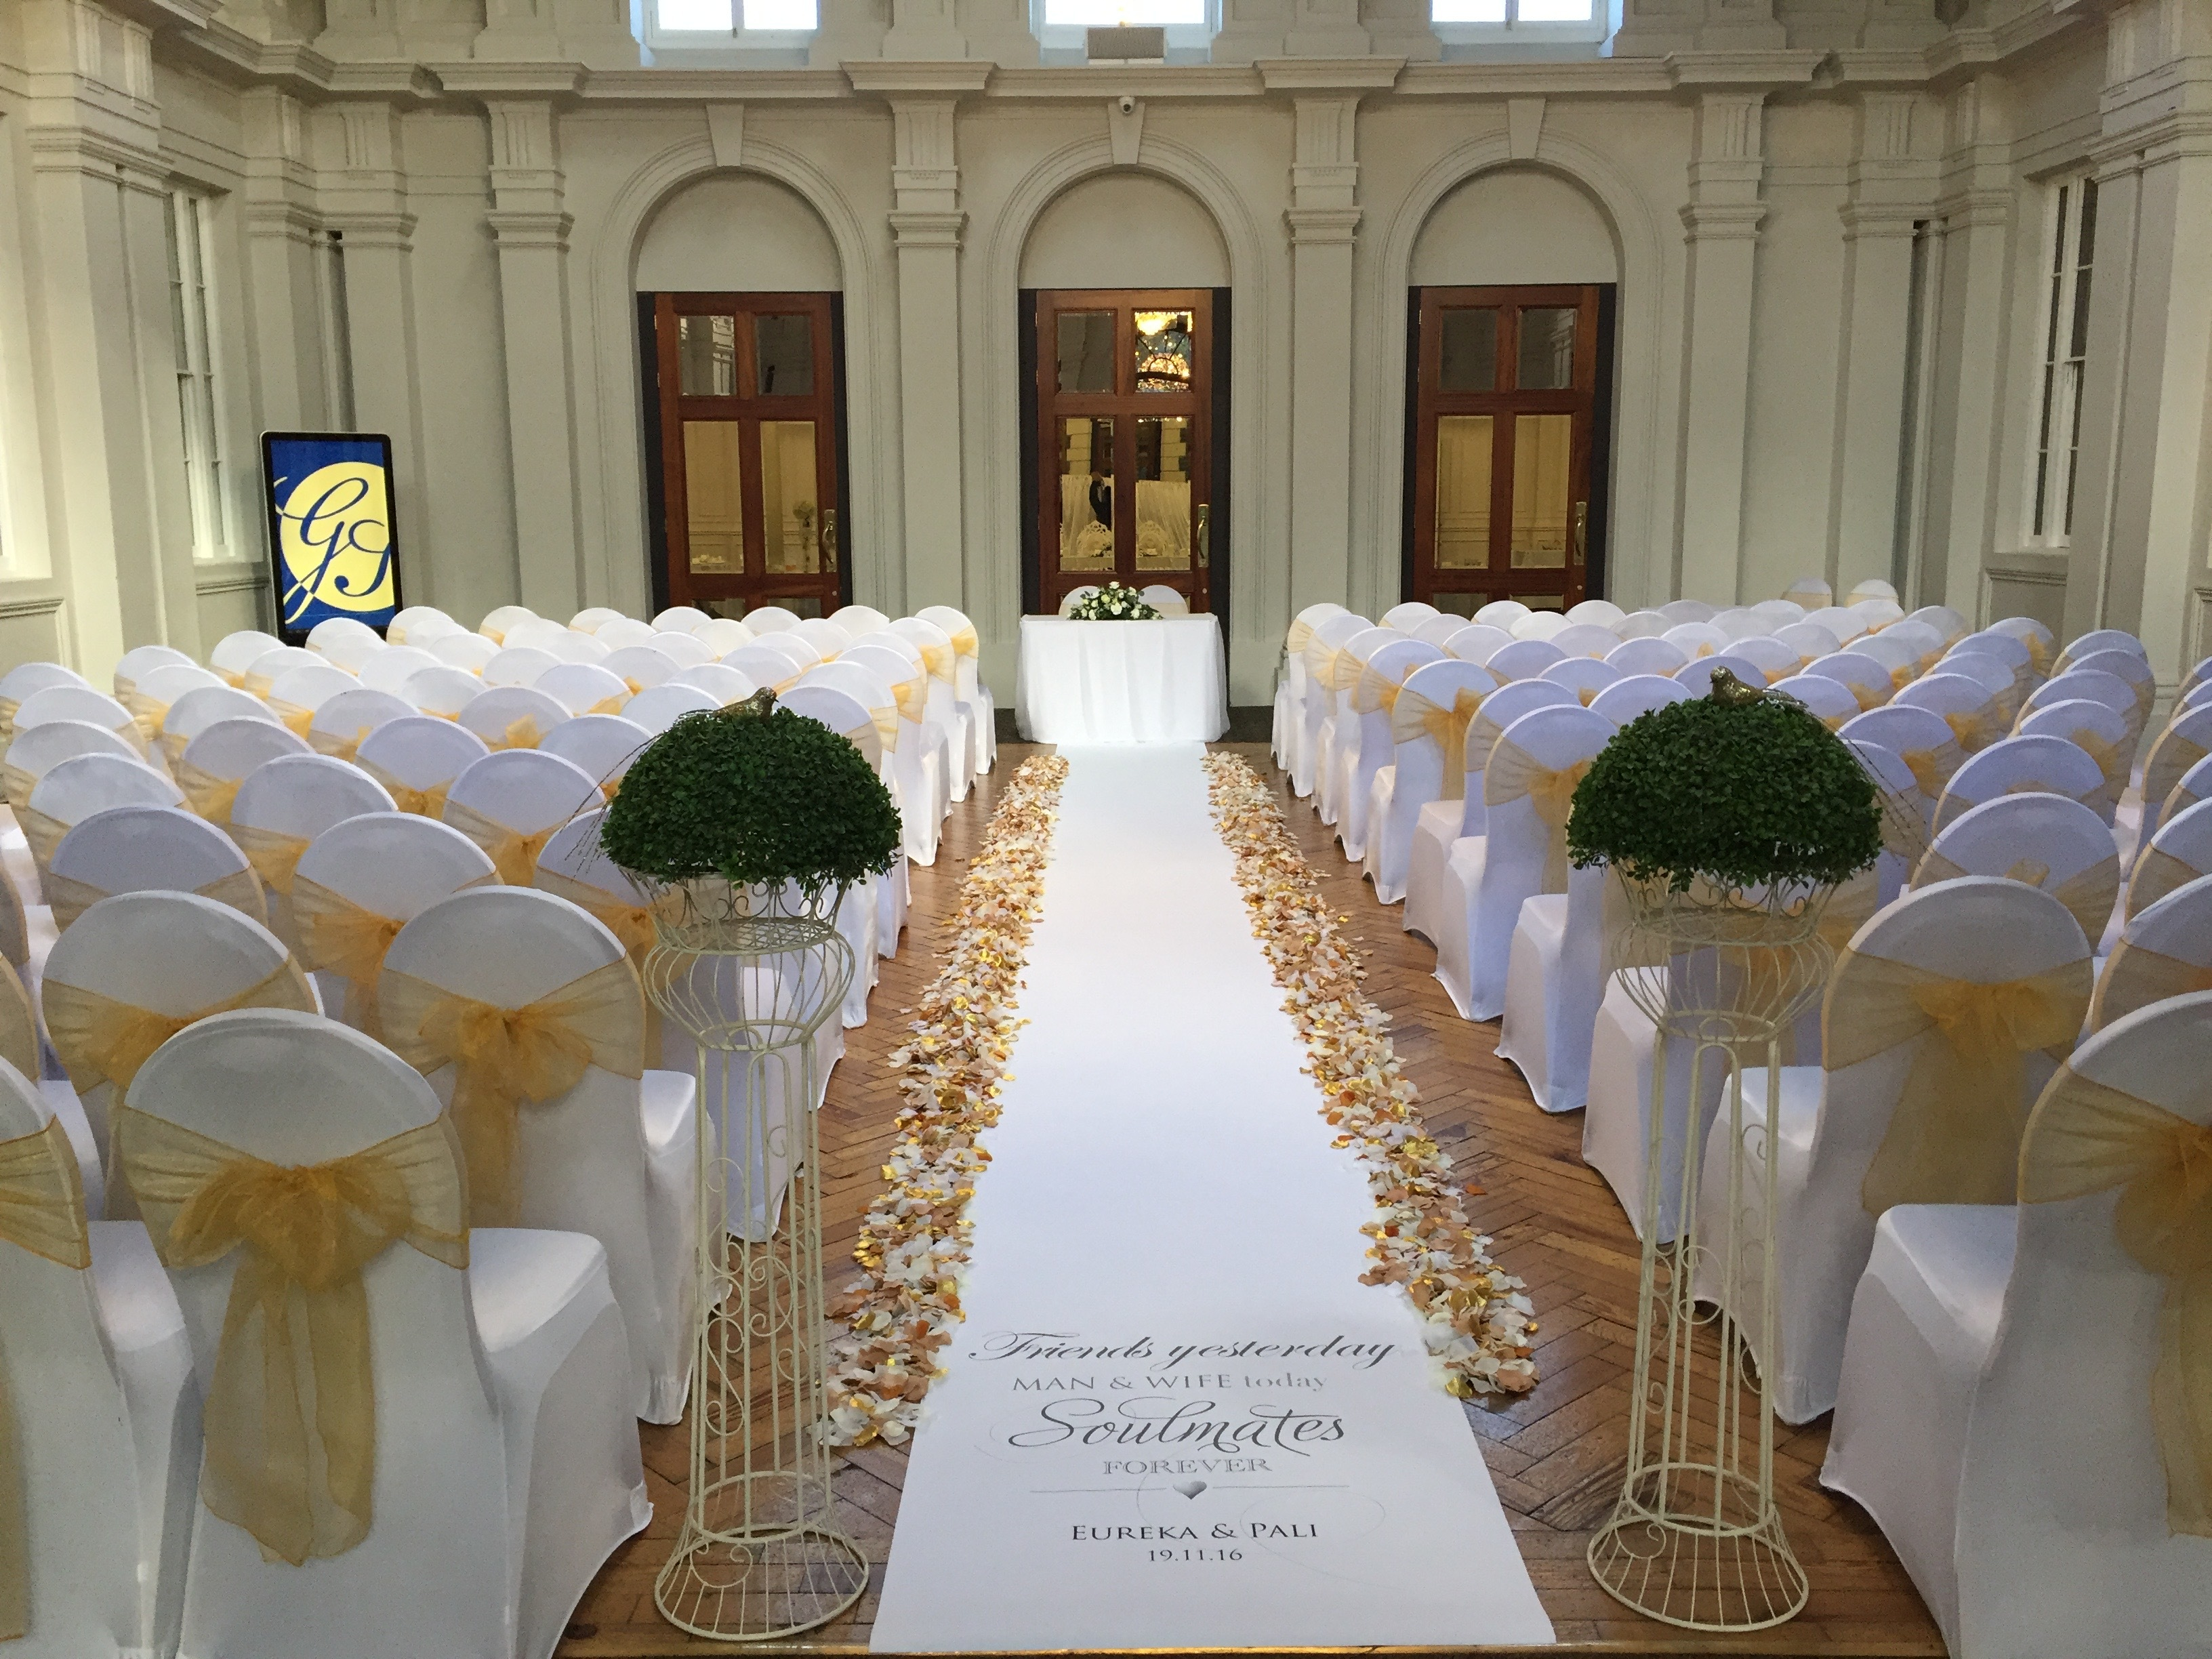 Hire Grand Station Events Venue Old Ticketing Hall Venuescanner